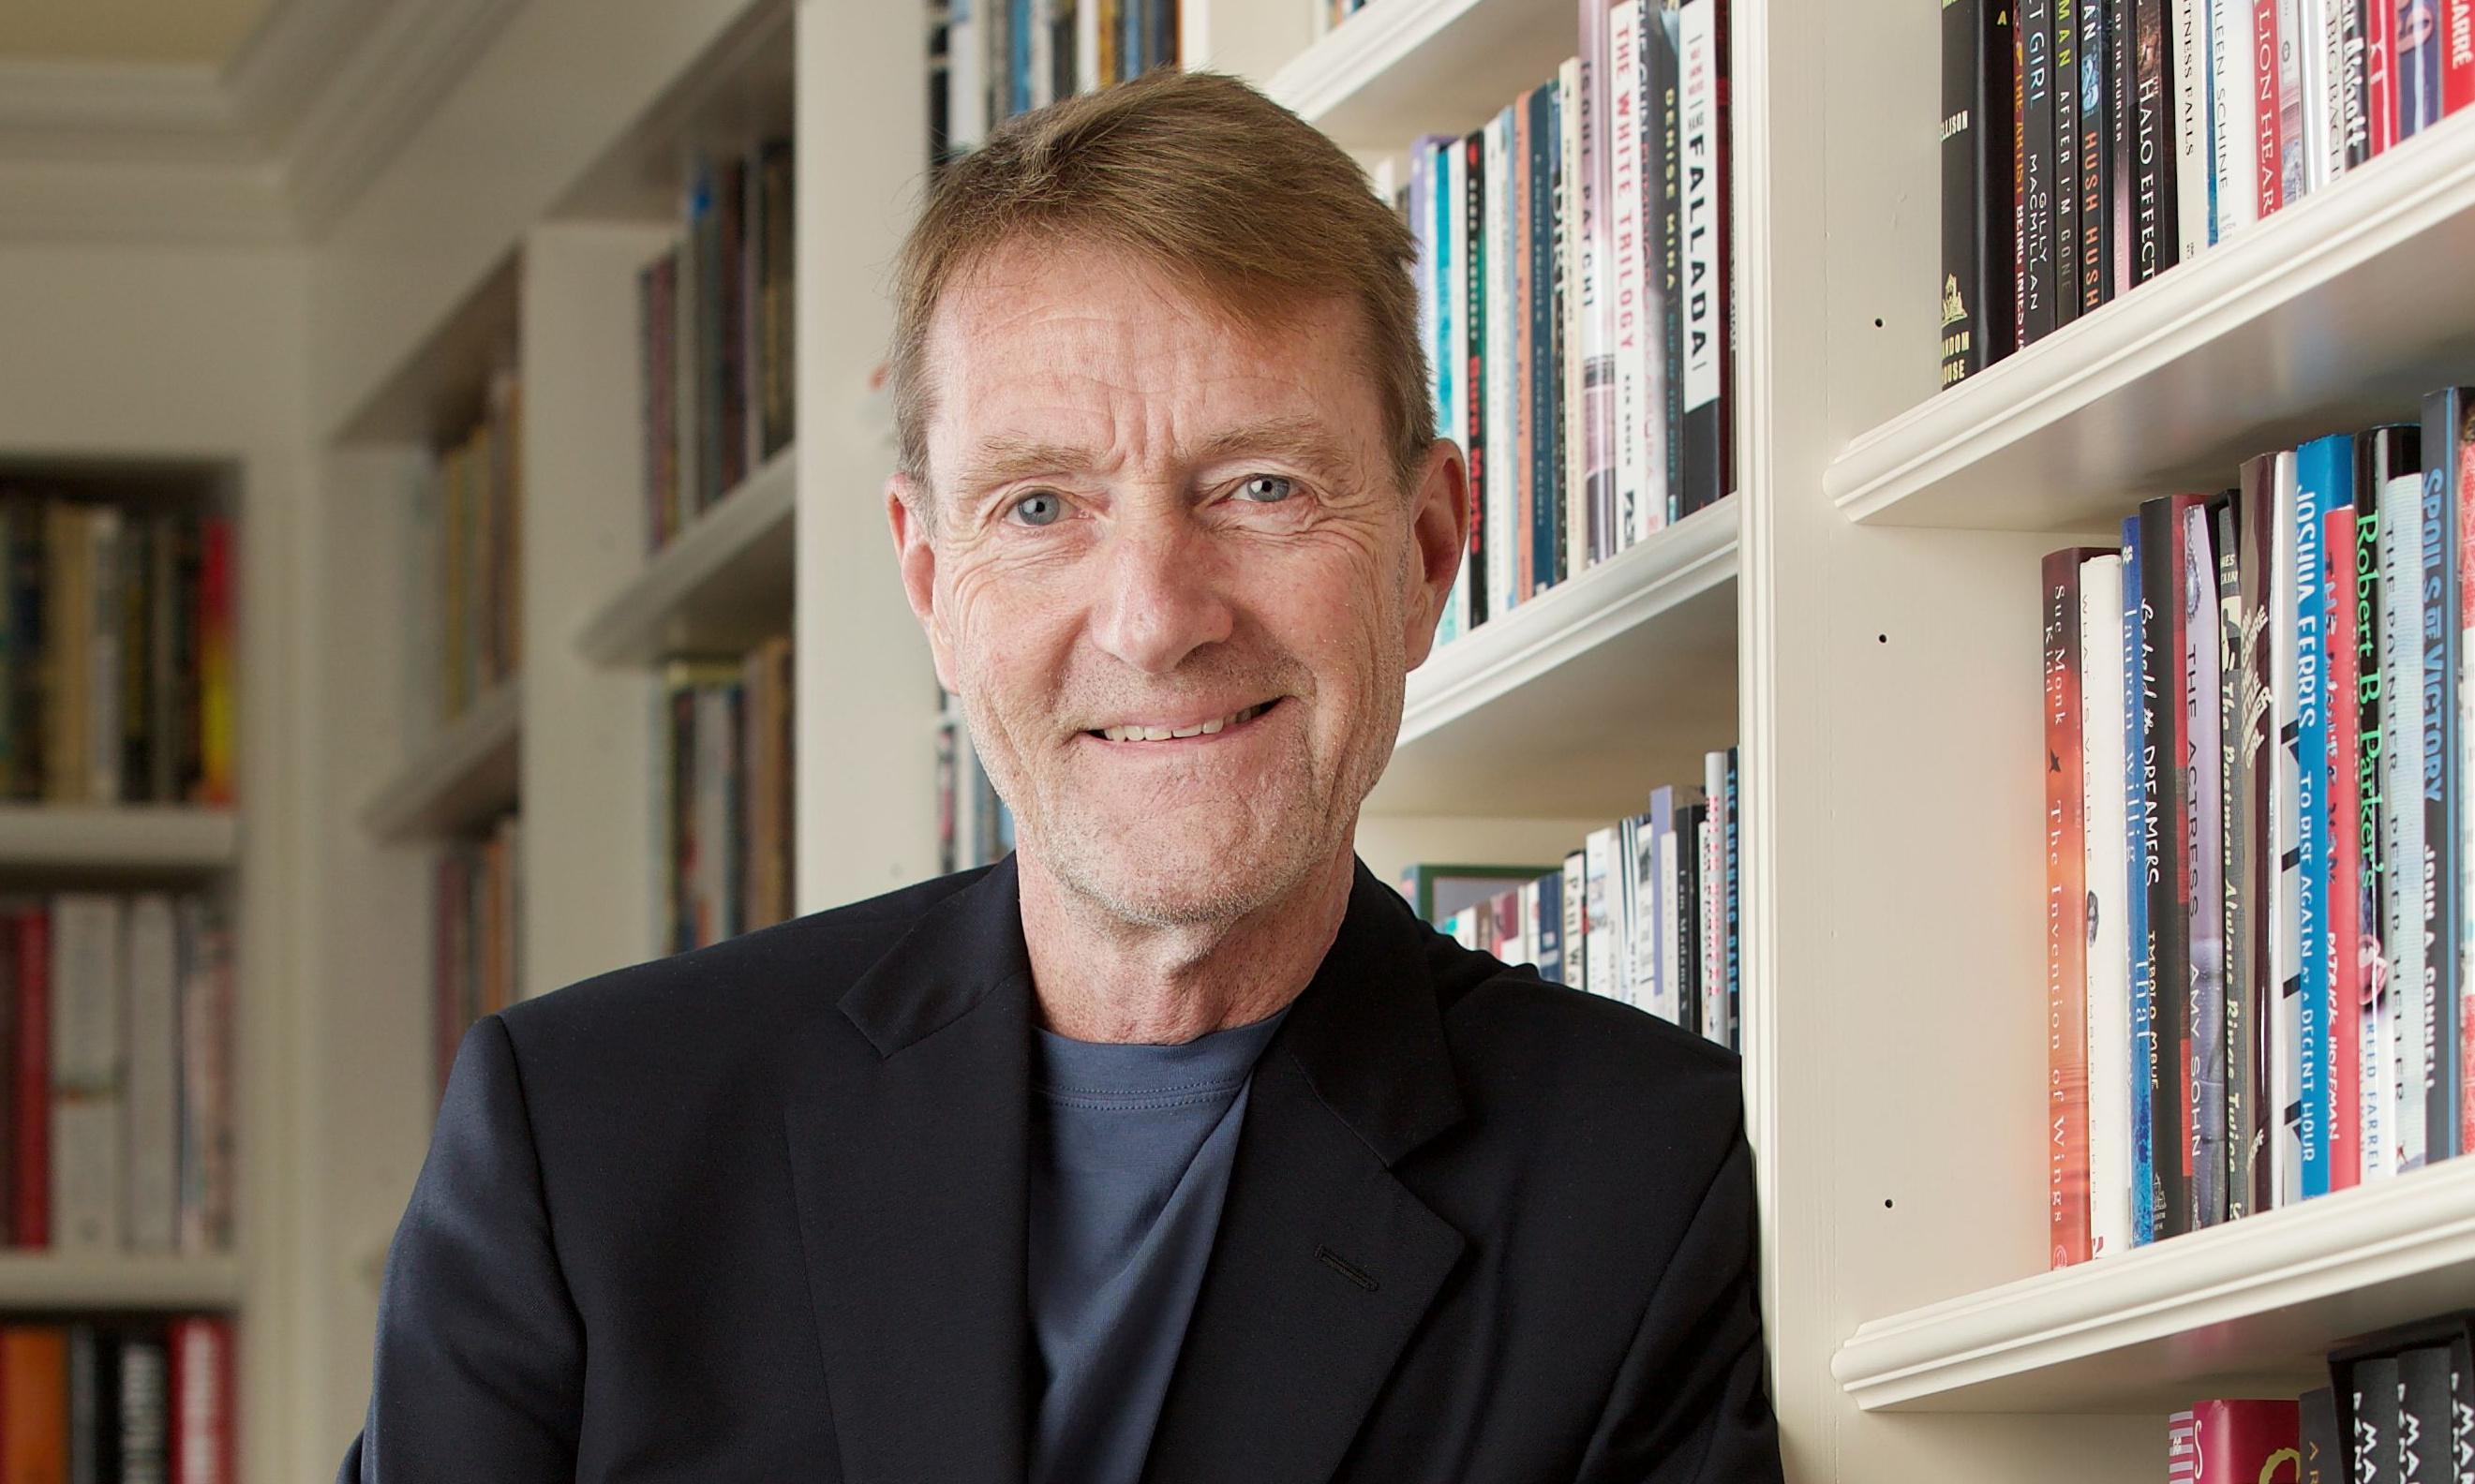 Lee Child set to adapt Jack Reacher novels for TV (but with a taller star)